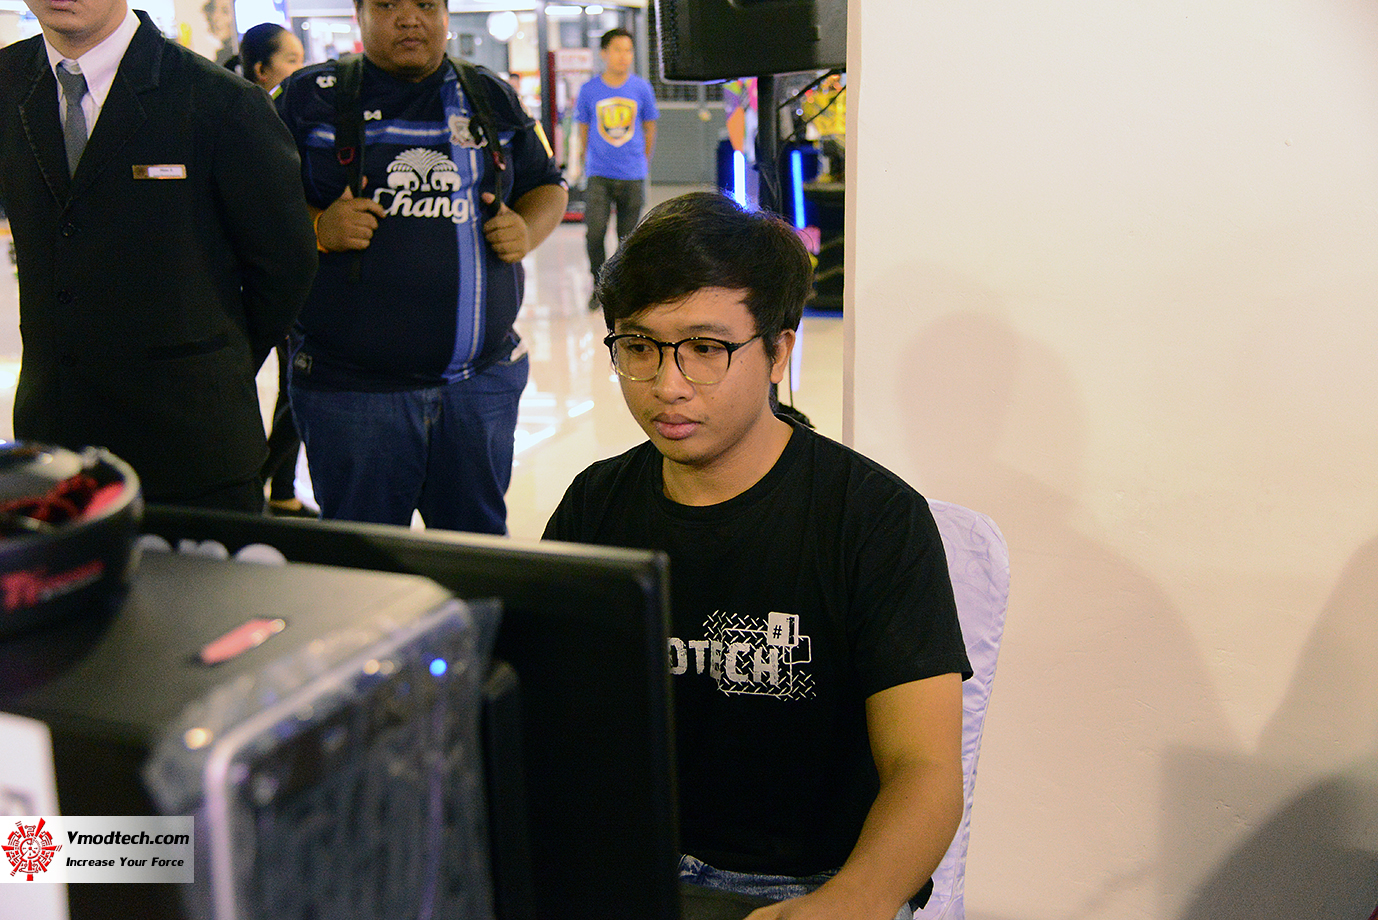 dsc 6704 AMD OMG! Party 2015 (AMD Overclock Modding Gaming Party 2015)